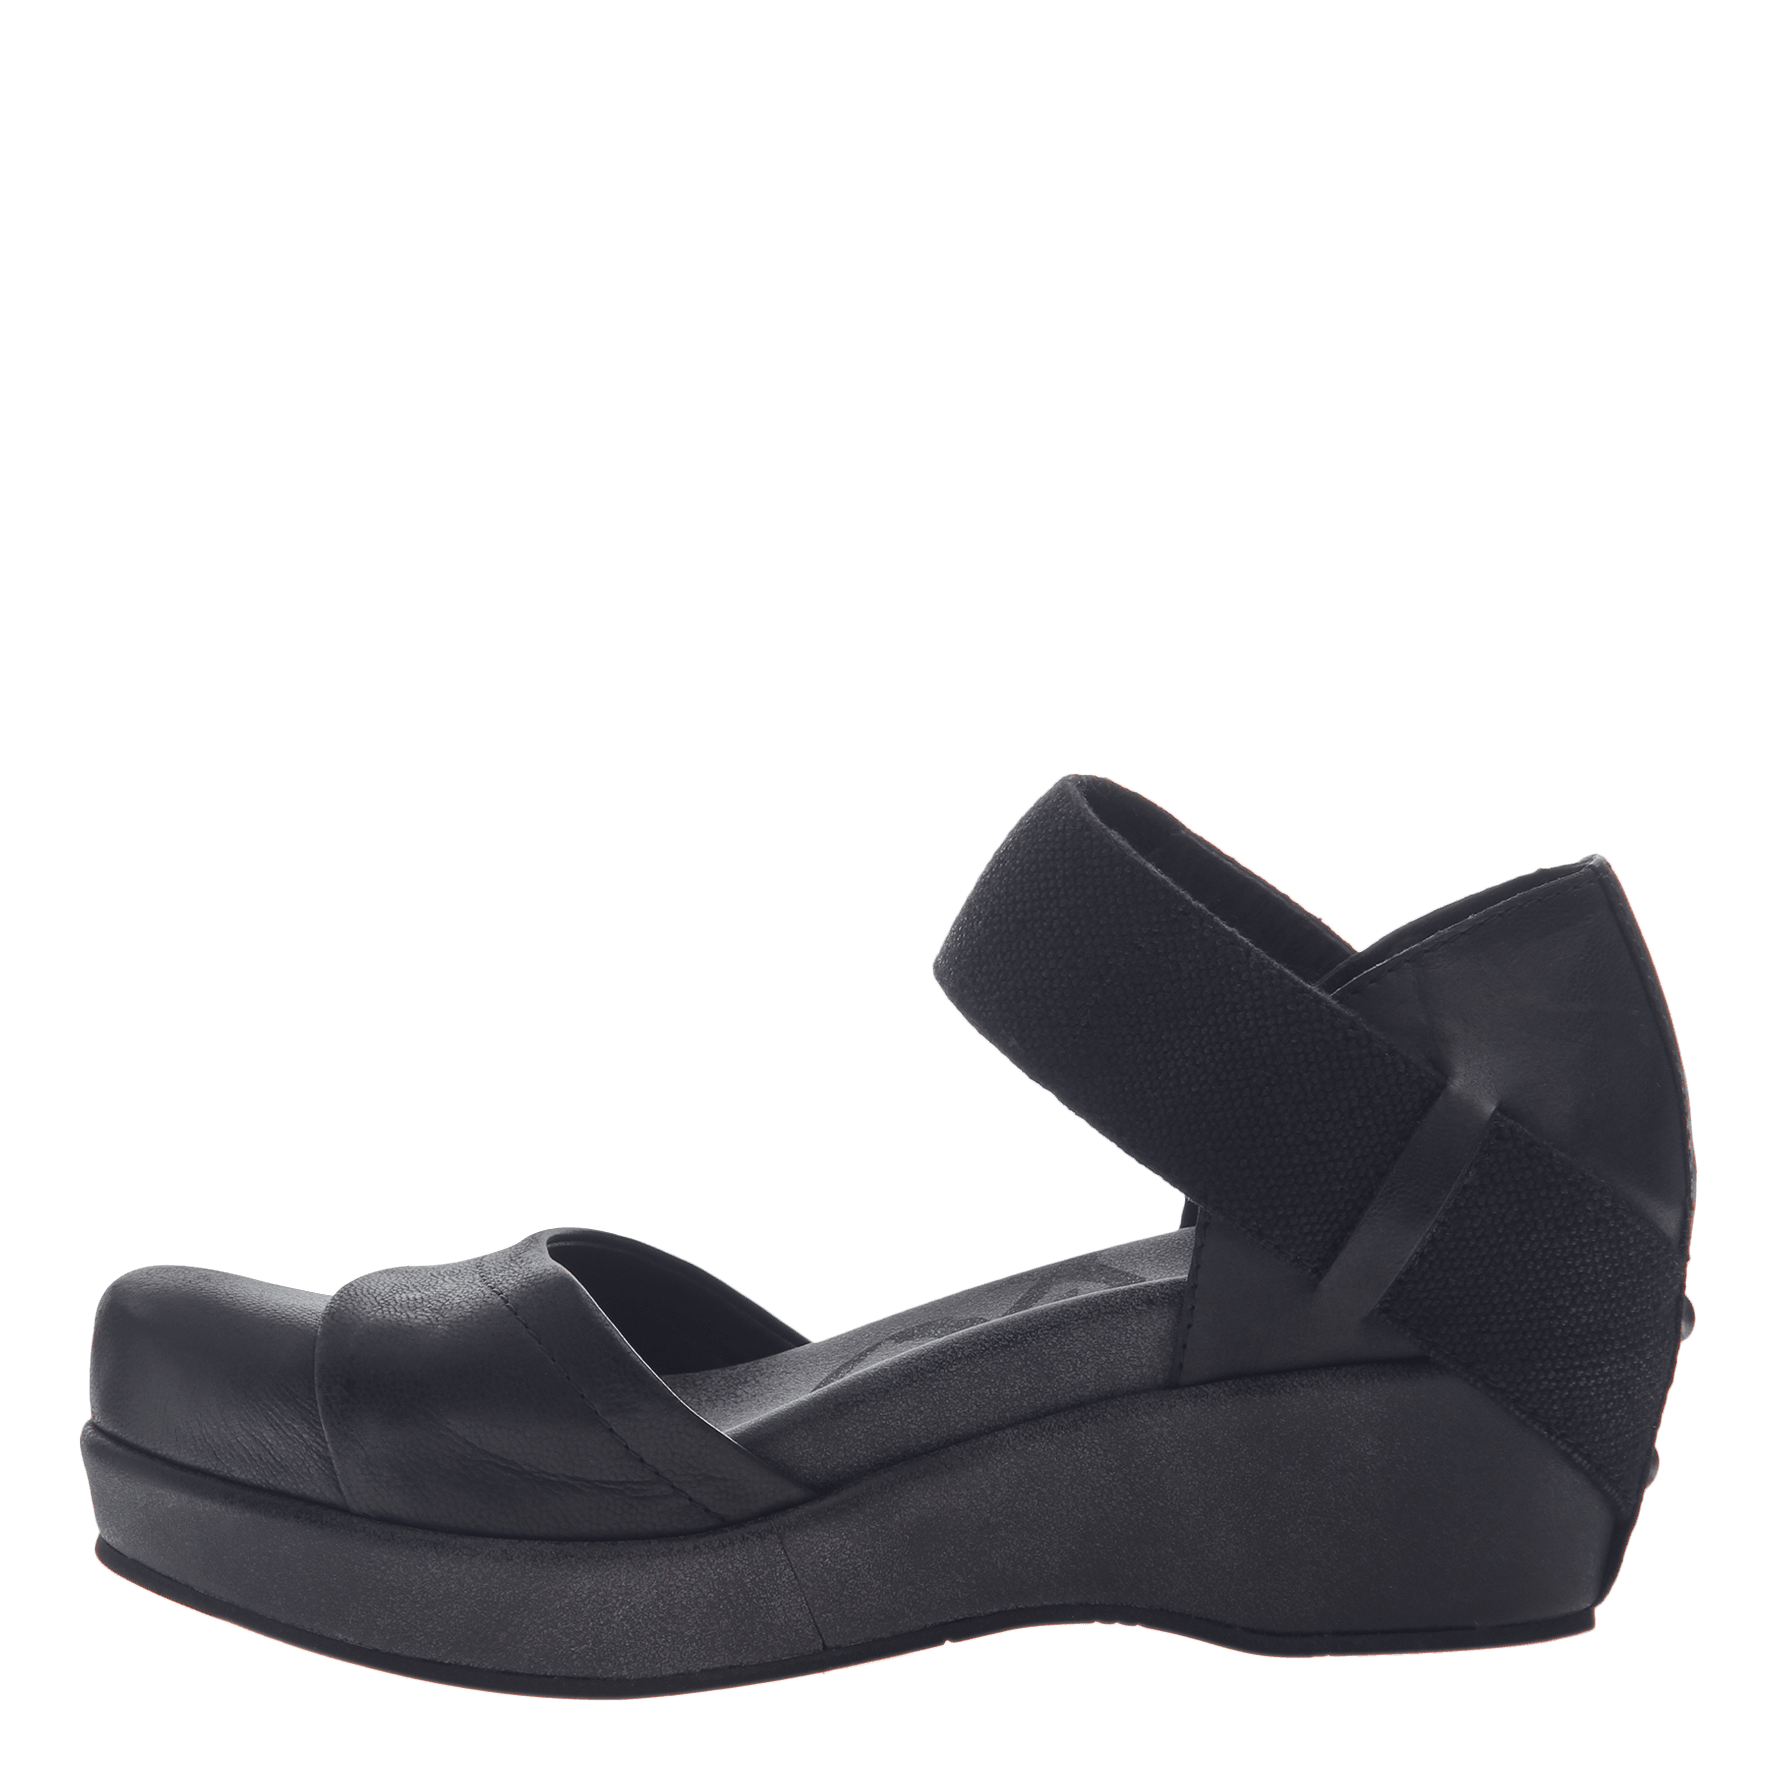 Womens closed toe wedges wander out in black inside view 8201879d2e59